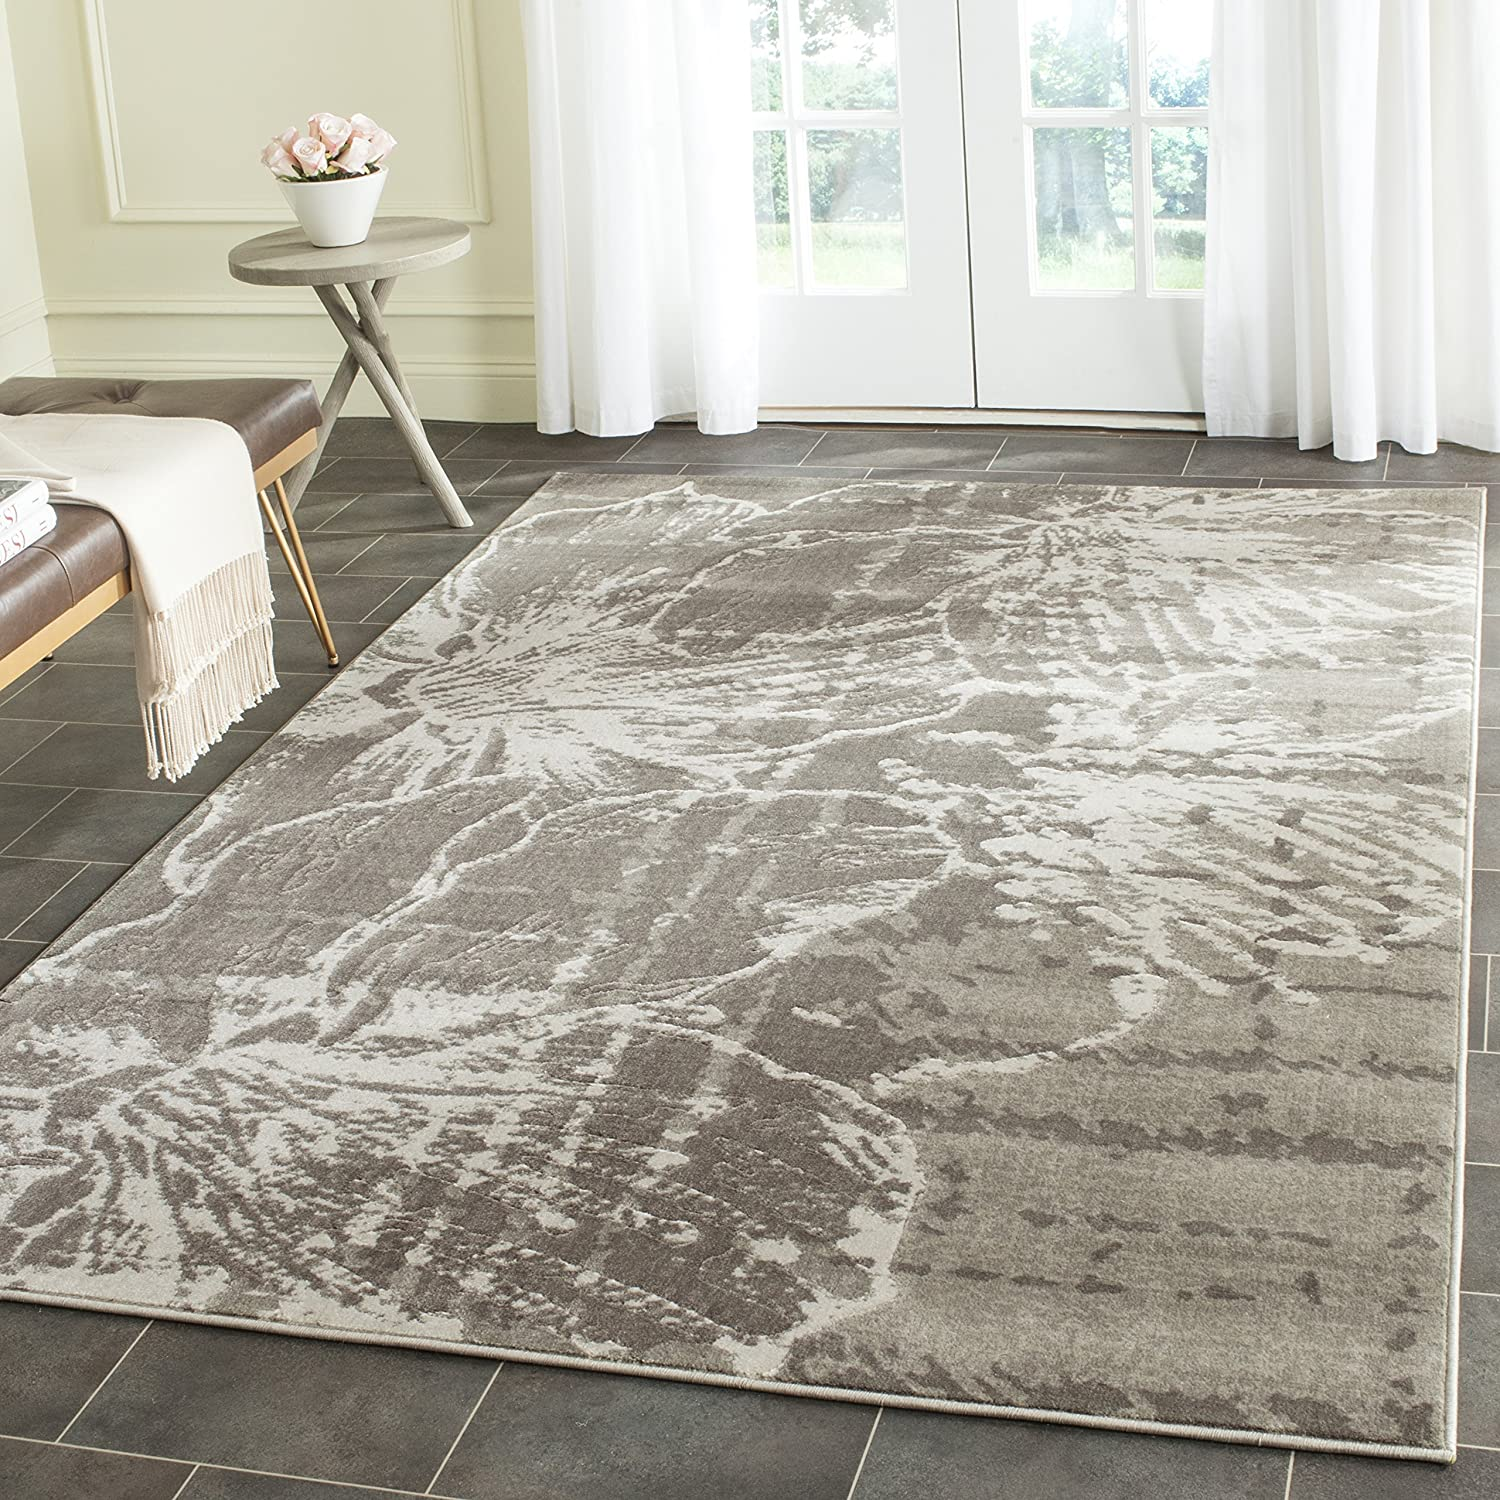 Amazon Com Safavieh Porcello Collection Prl7732a Floral Non Shedding Stain Resistant Living Room Bedroom Area Rug 6 7 X Square Grey Dark Furniture Decor